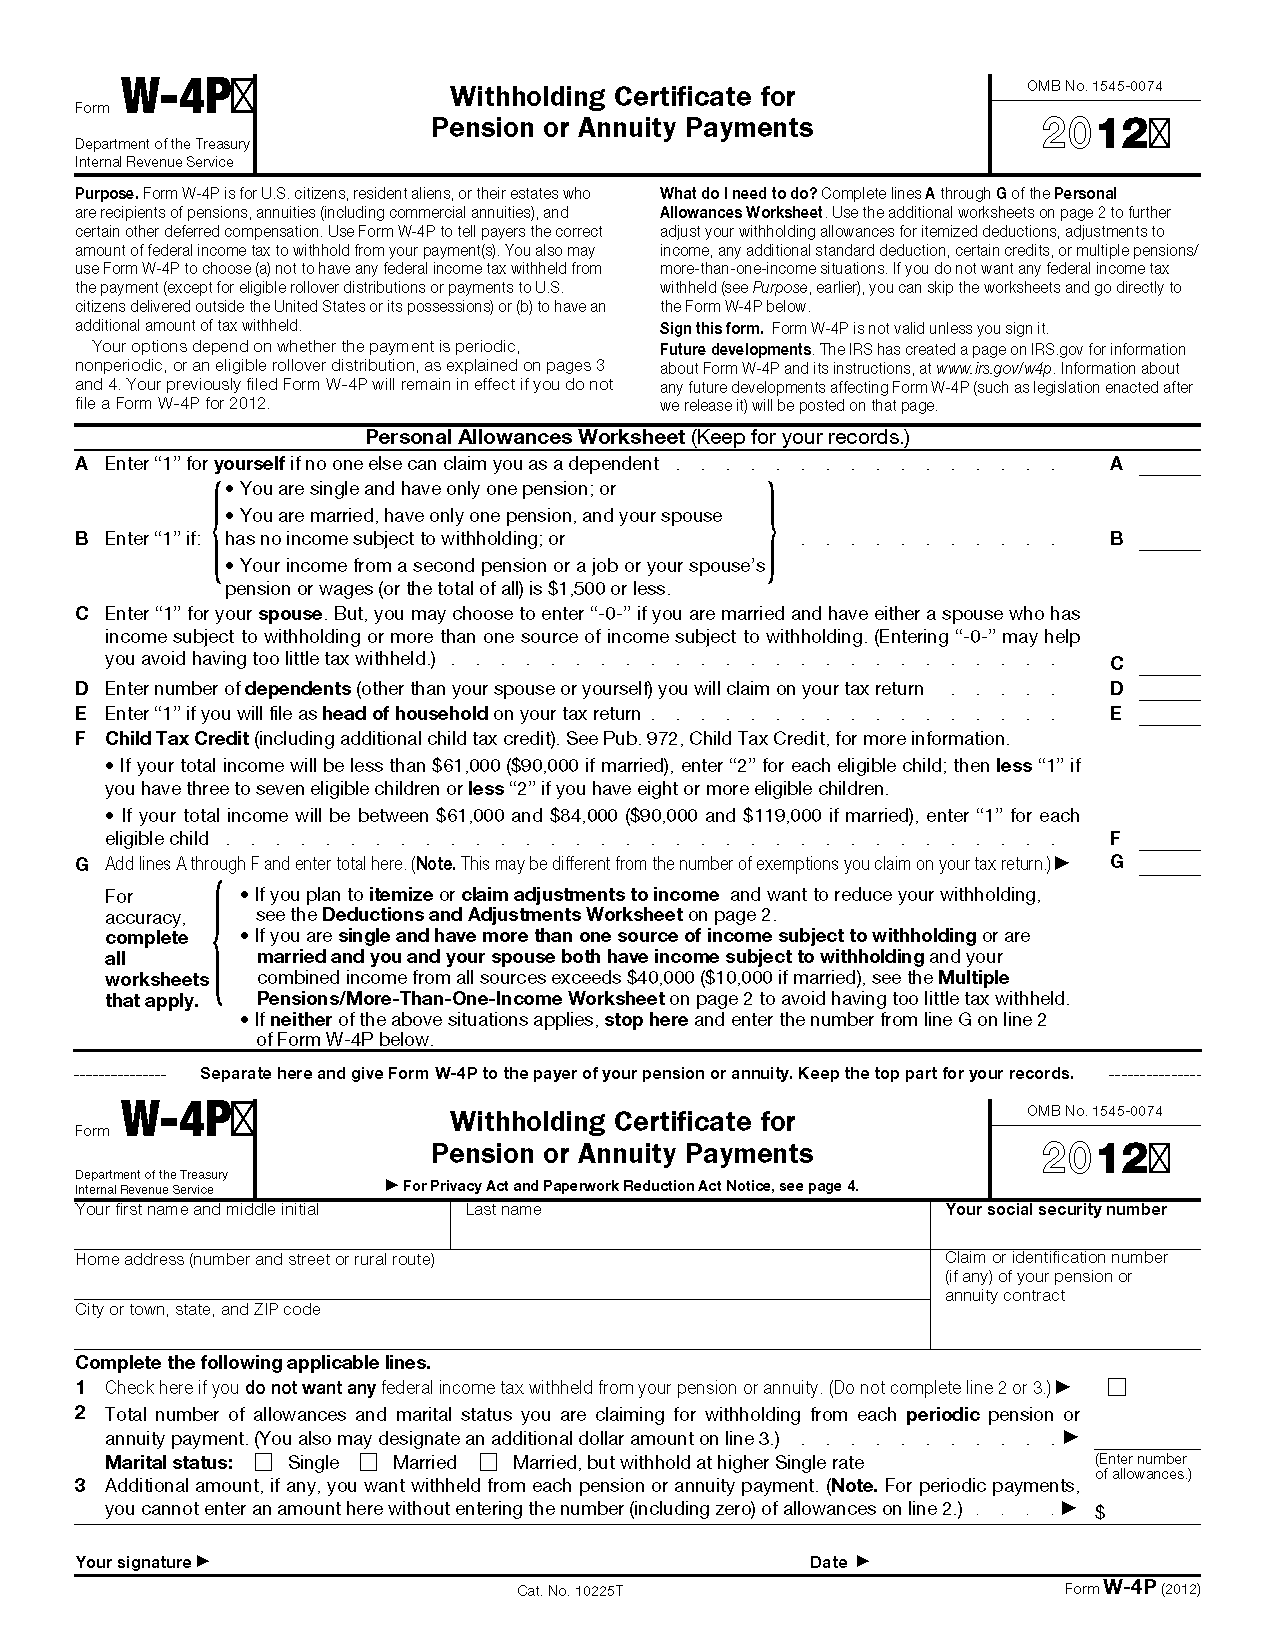 irs form w4 p - nomadconvoy.co